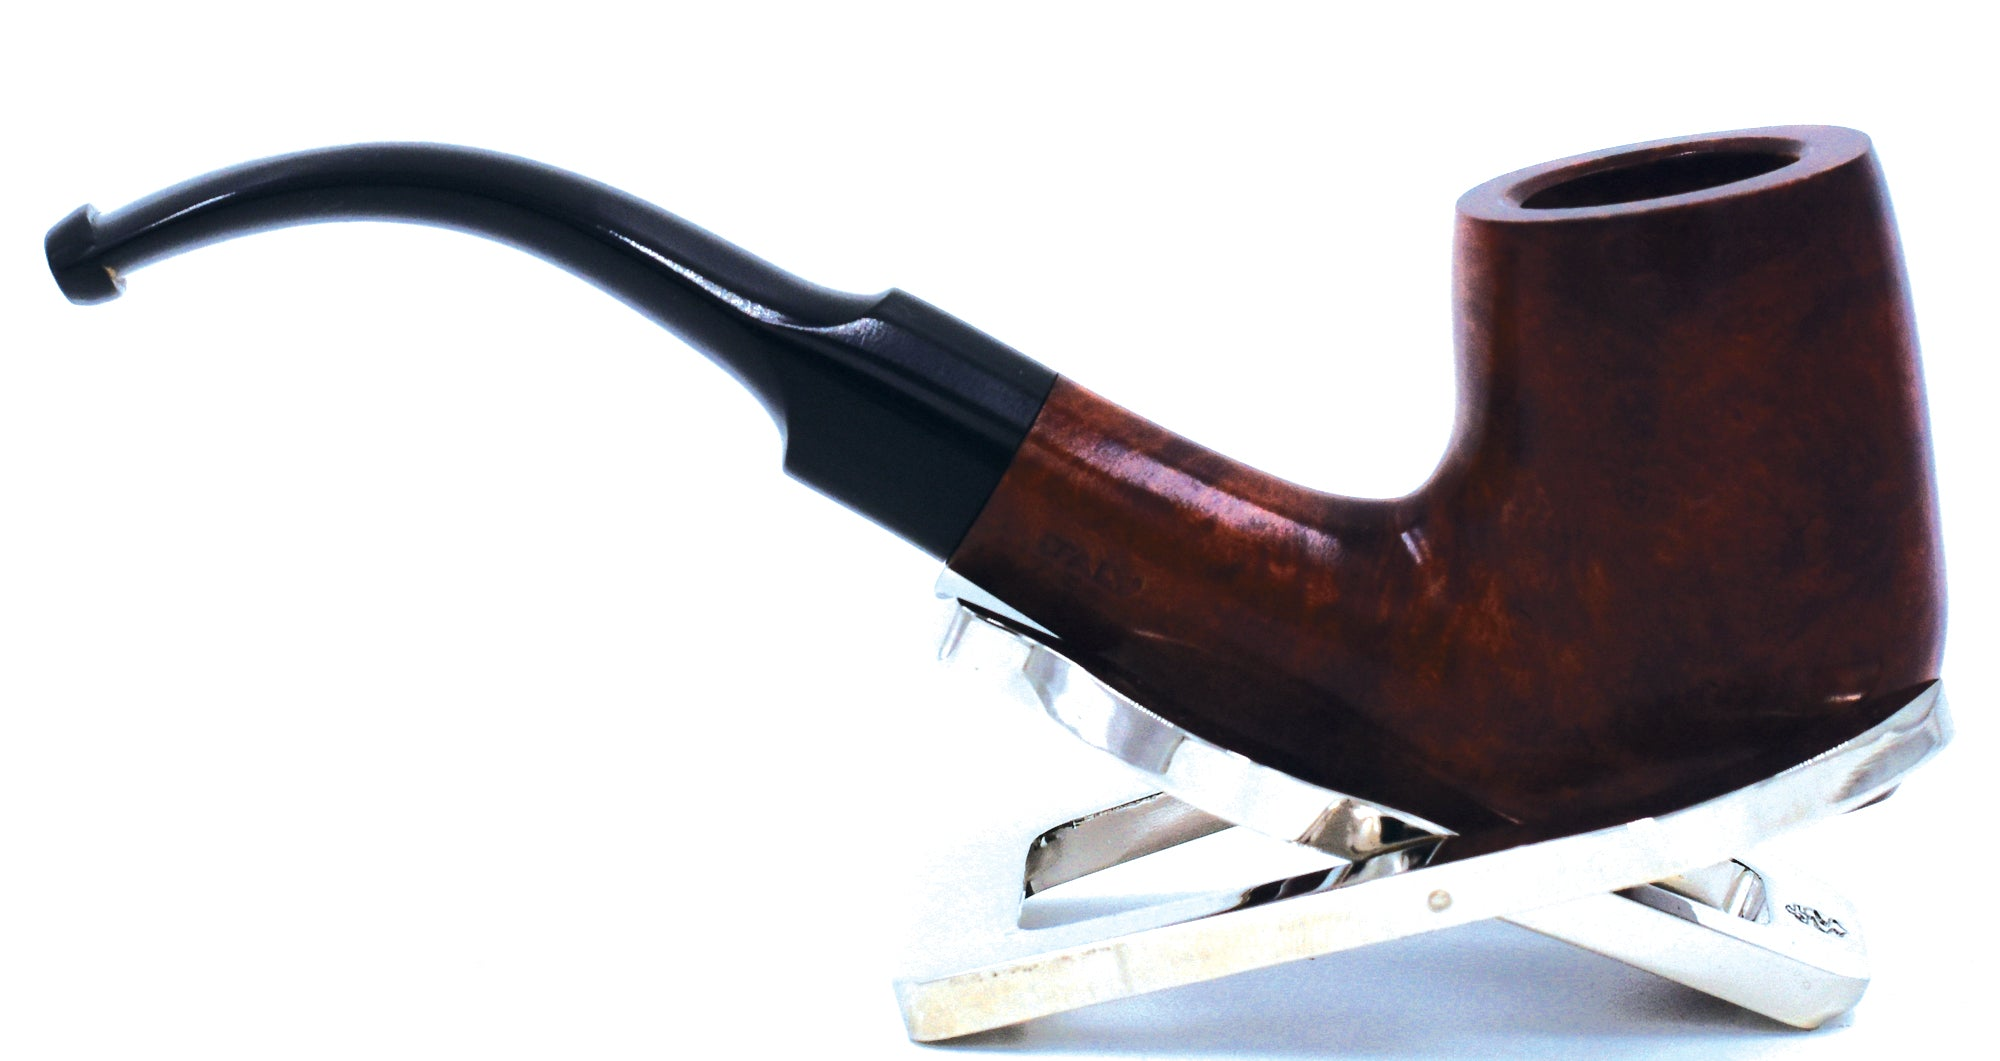 LEGENDEX® LASCALA* 9 MM Filtered Briar Smoking Pipe Made In Italy 01-08-501 Acrylic Series